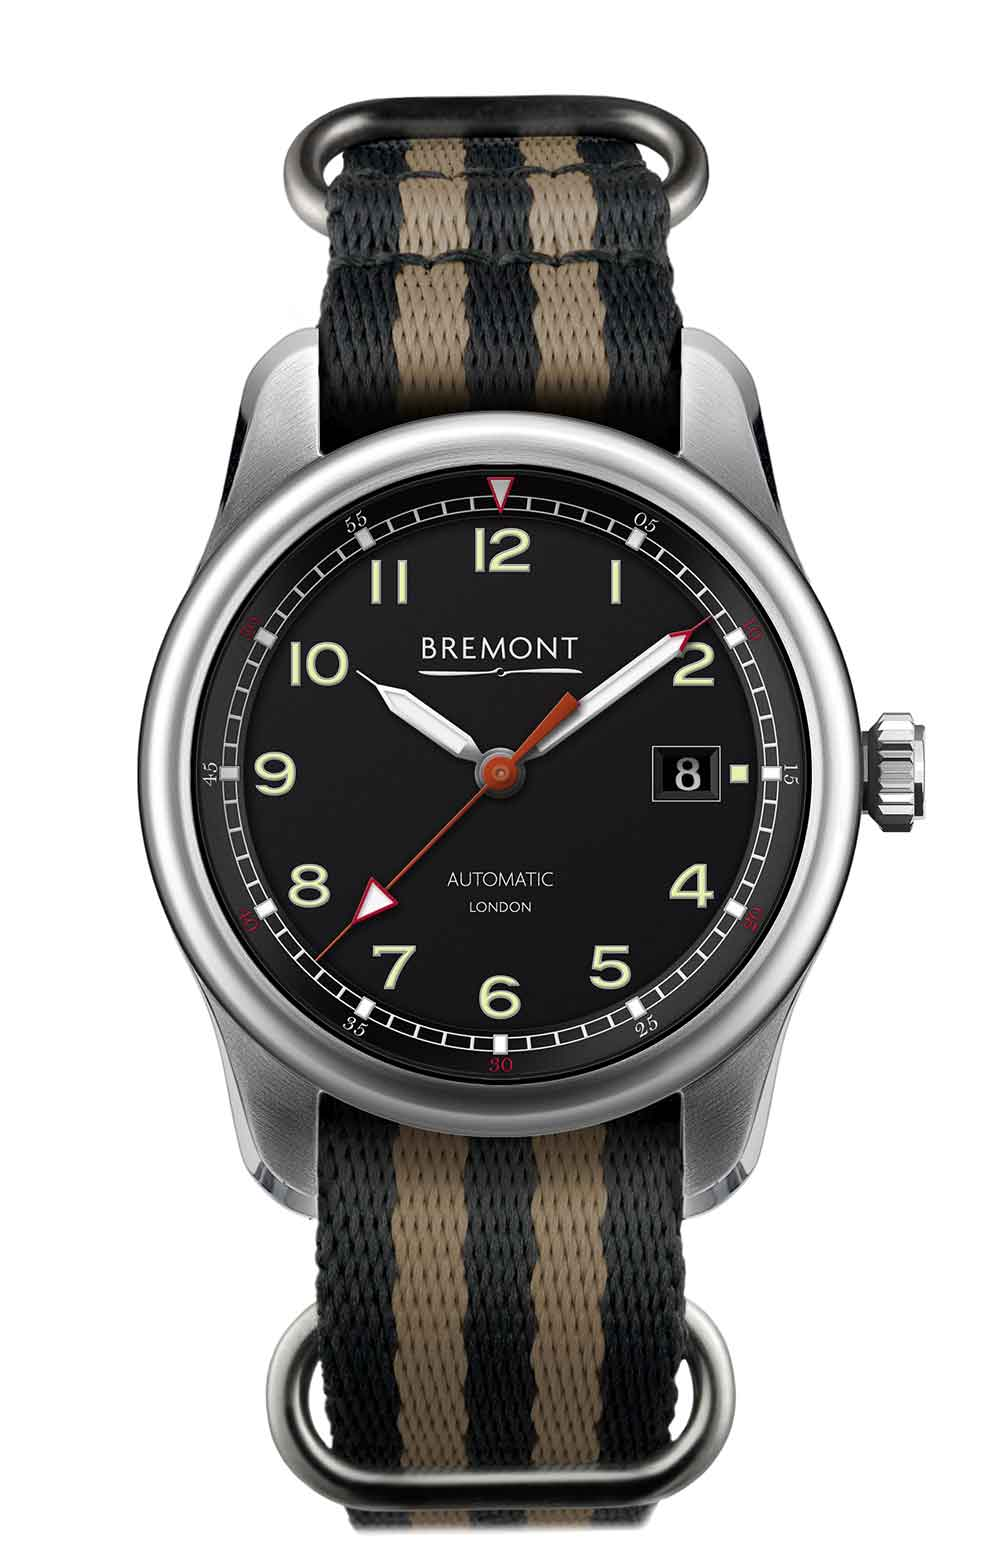 Bremont Airco Mach 1 pilot's watch with NATO strap